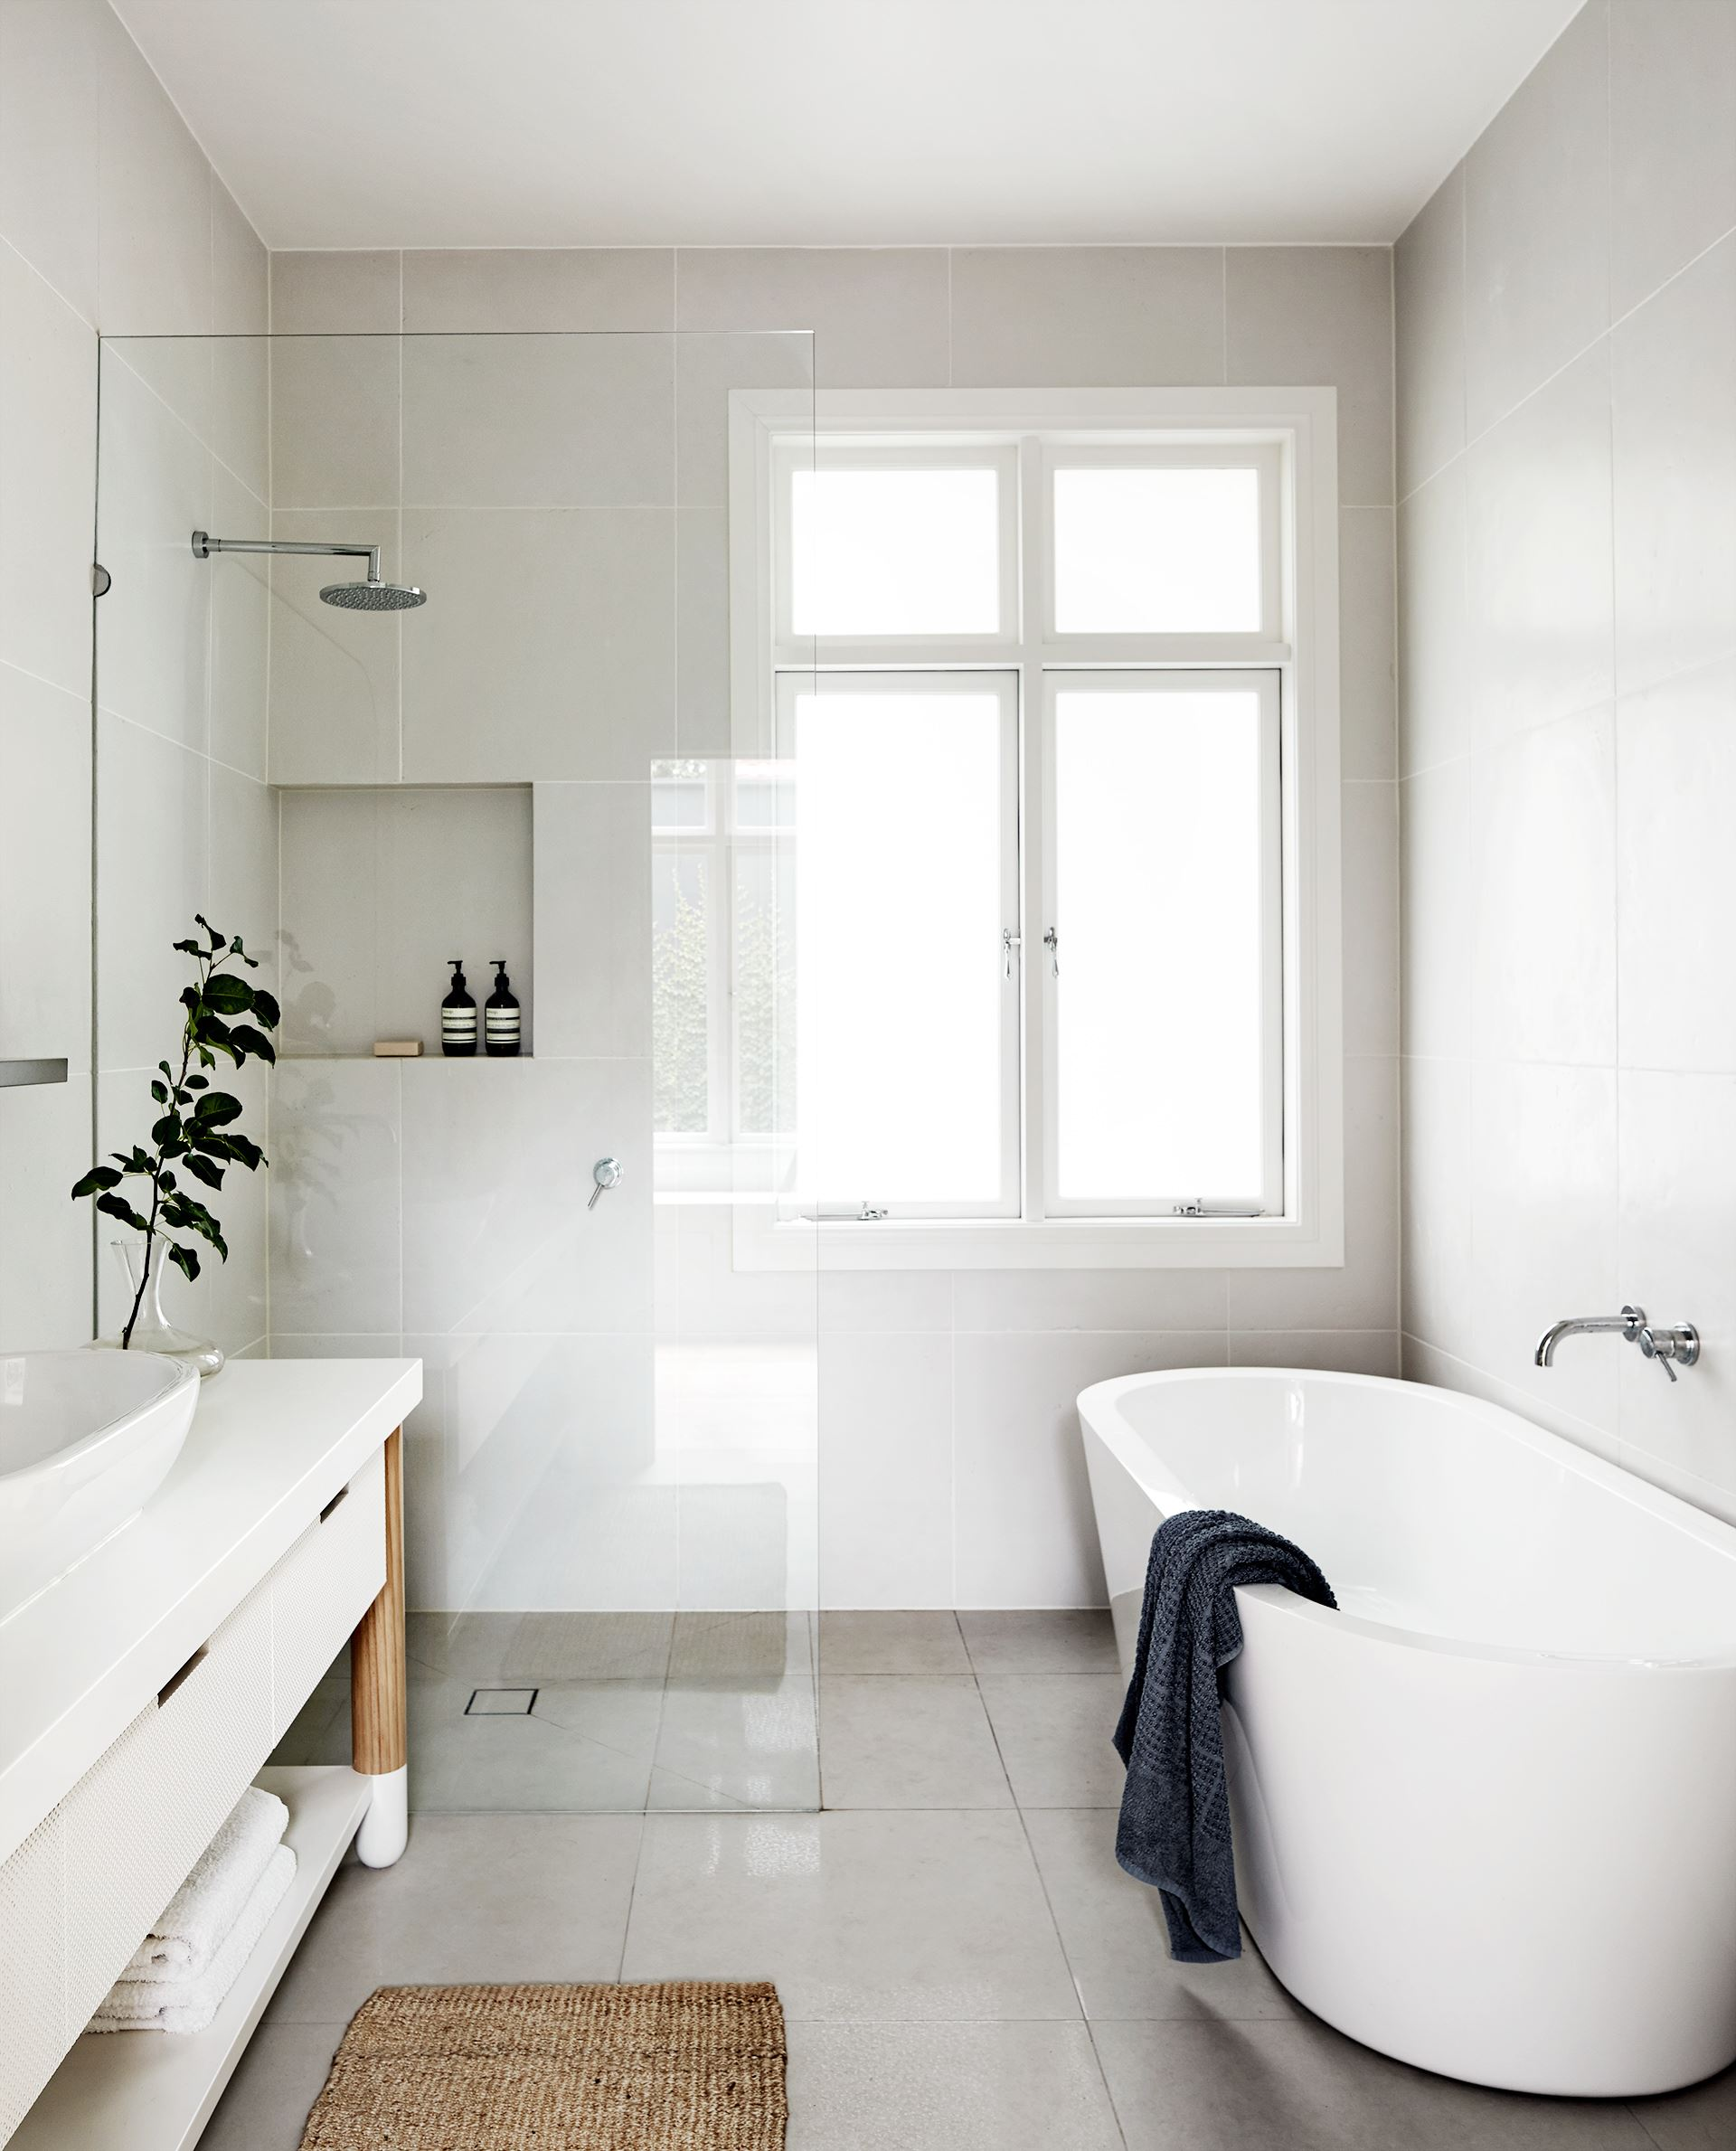 Designing A Small Bathroom Stylish Remodeling Ideas For Small Bathrooms Apartment Therapy